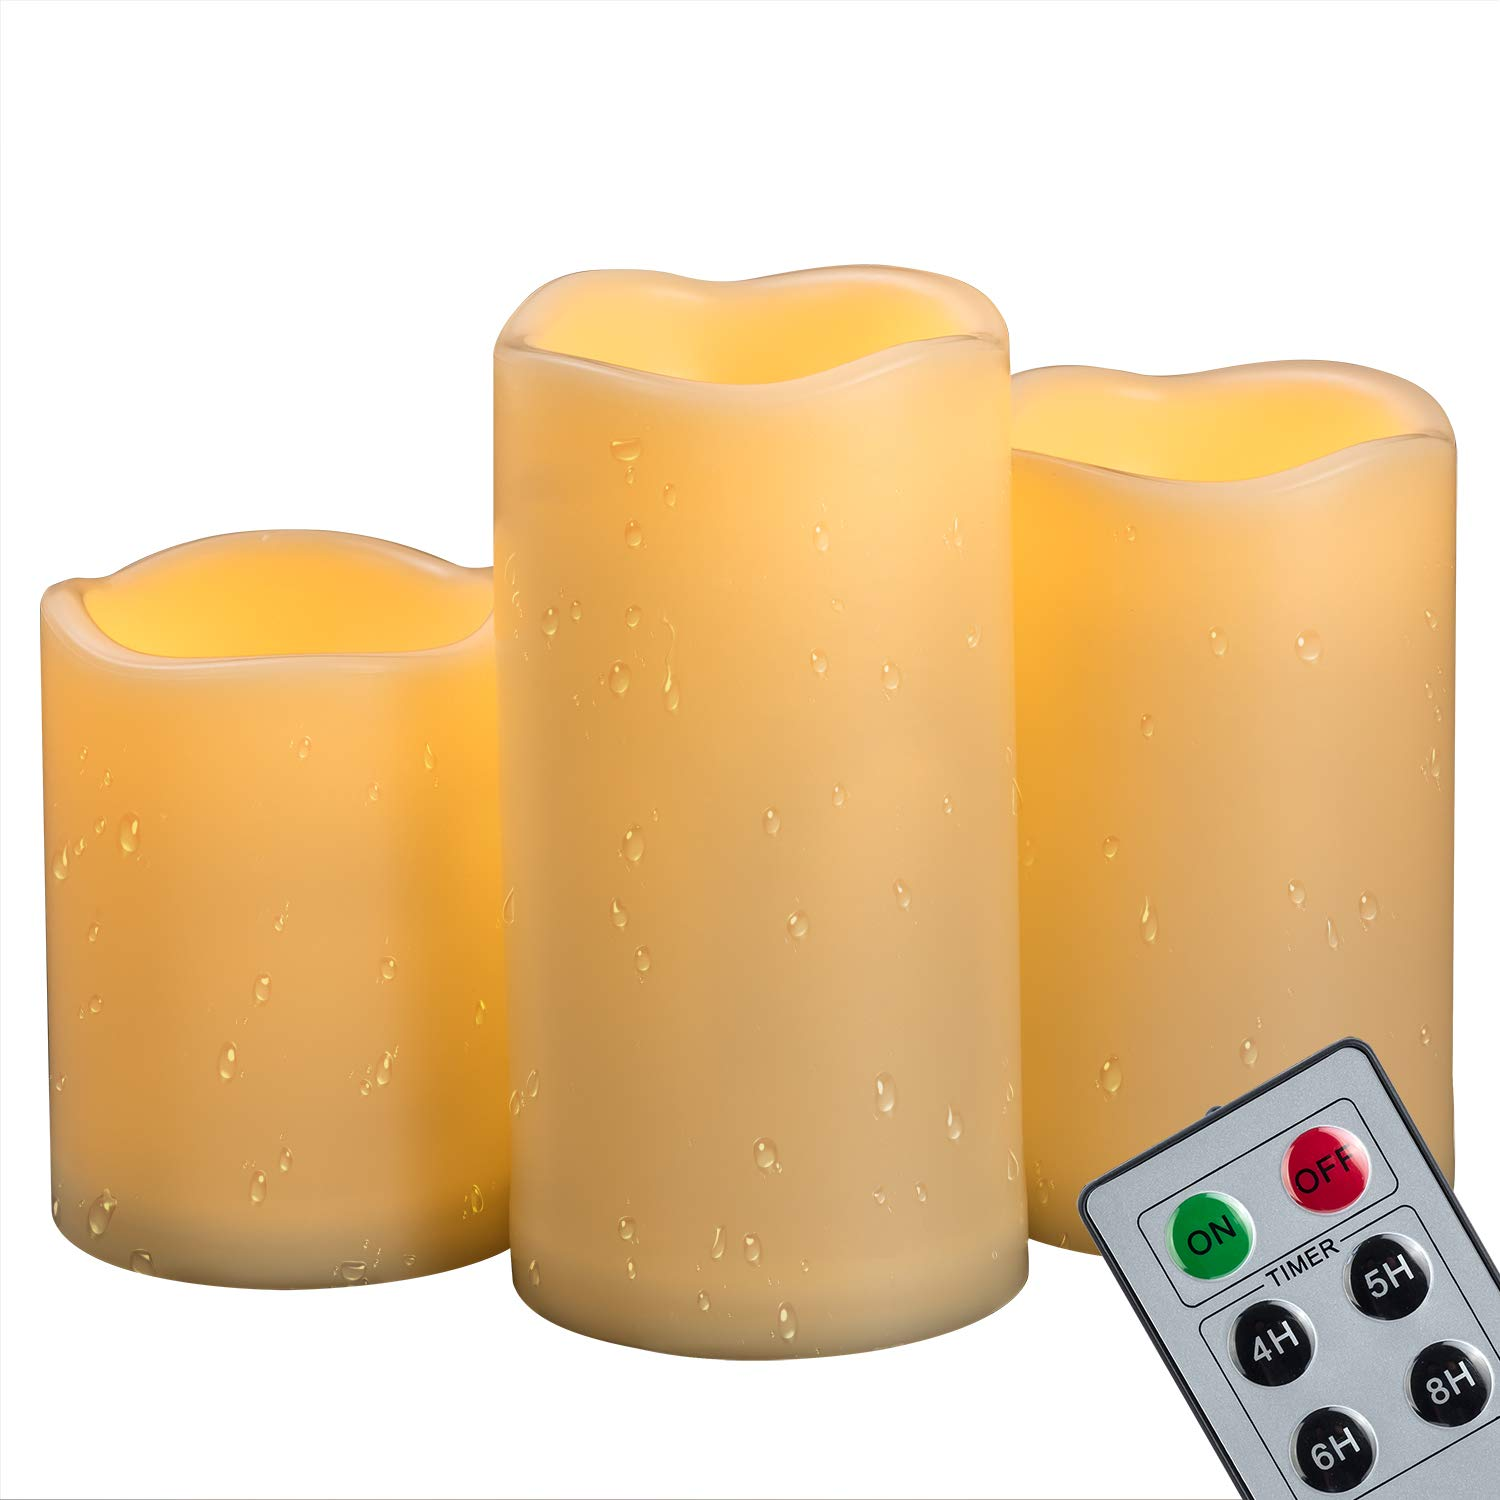 4''5''6'' Outdoor Indoor Waterproof LED Pillar Candles with Remote & Timer/Large Battery Operated Flickering Flameless Plastic Fake Candles for Outside Patio Decorative Hanging Lantern Home Decor Set 3 by CANDLE IDEA